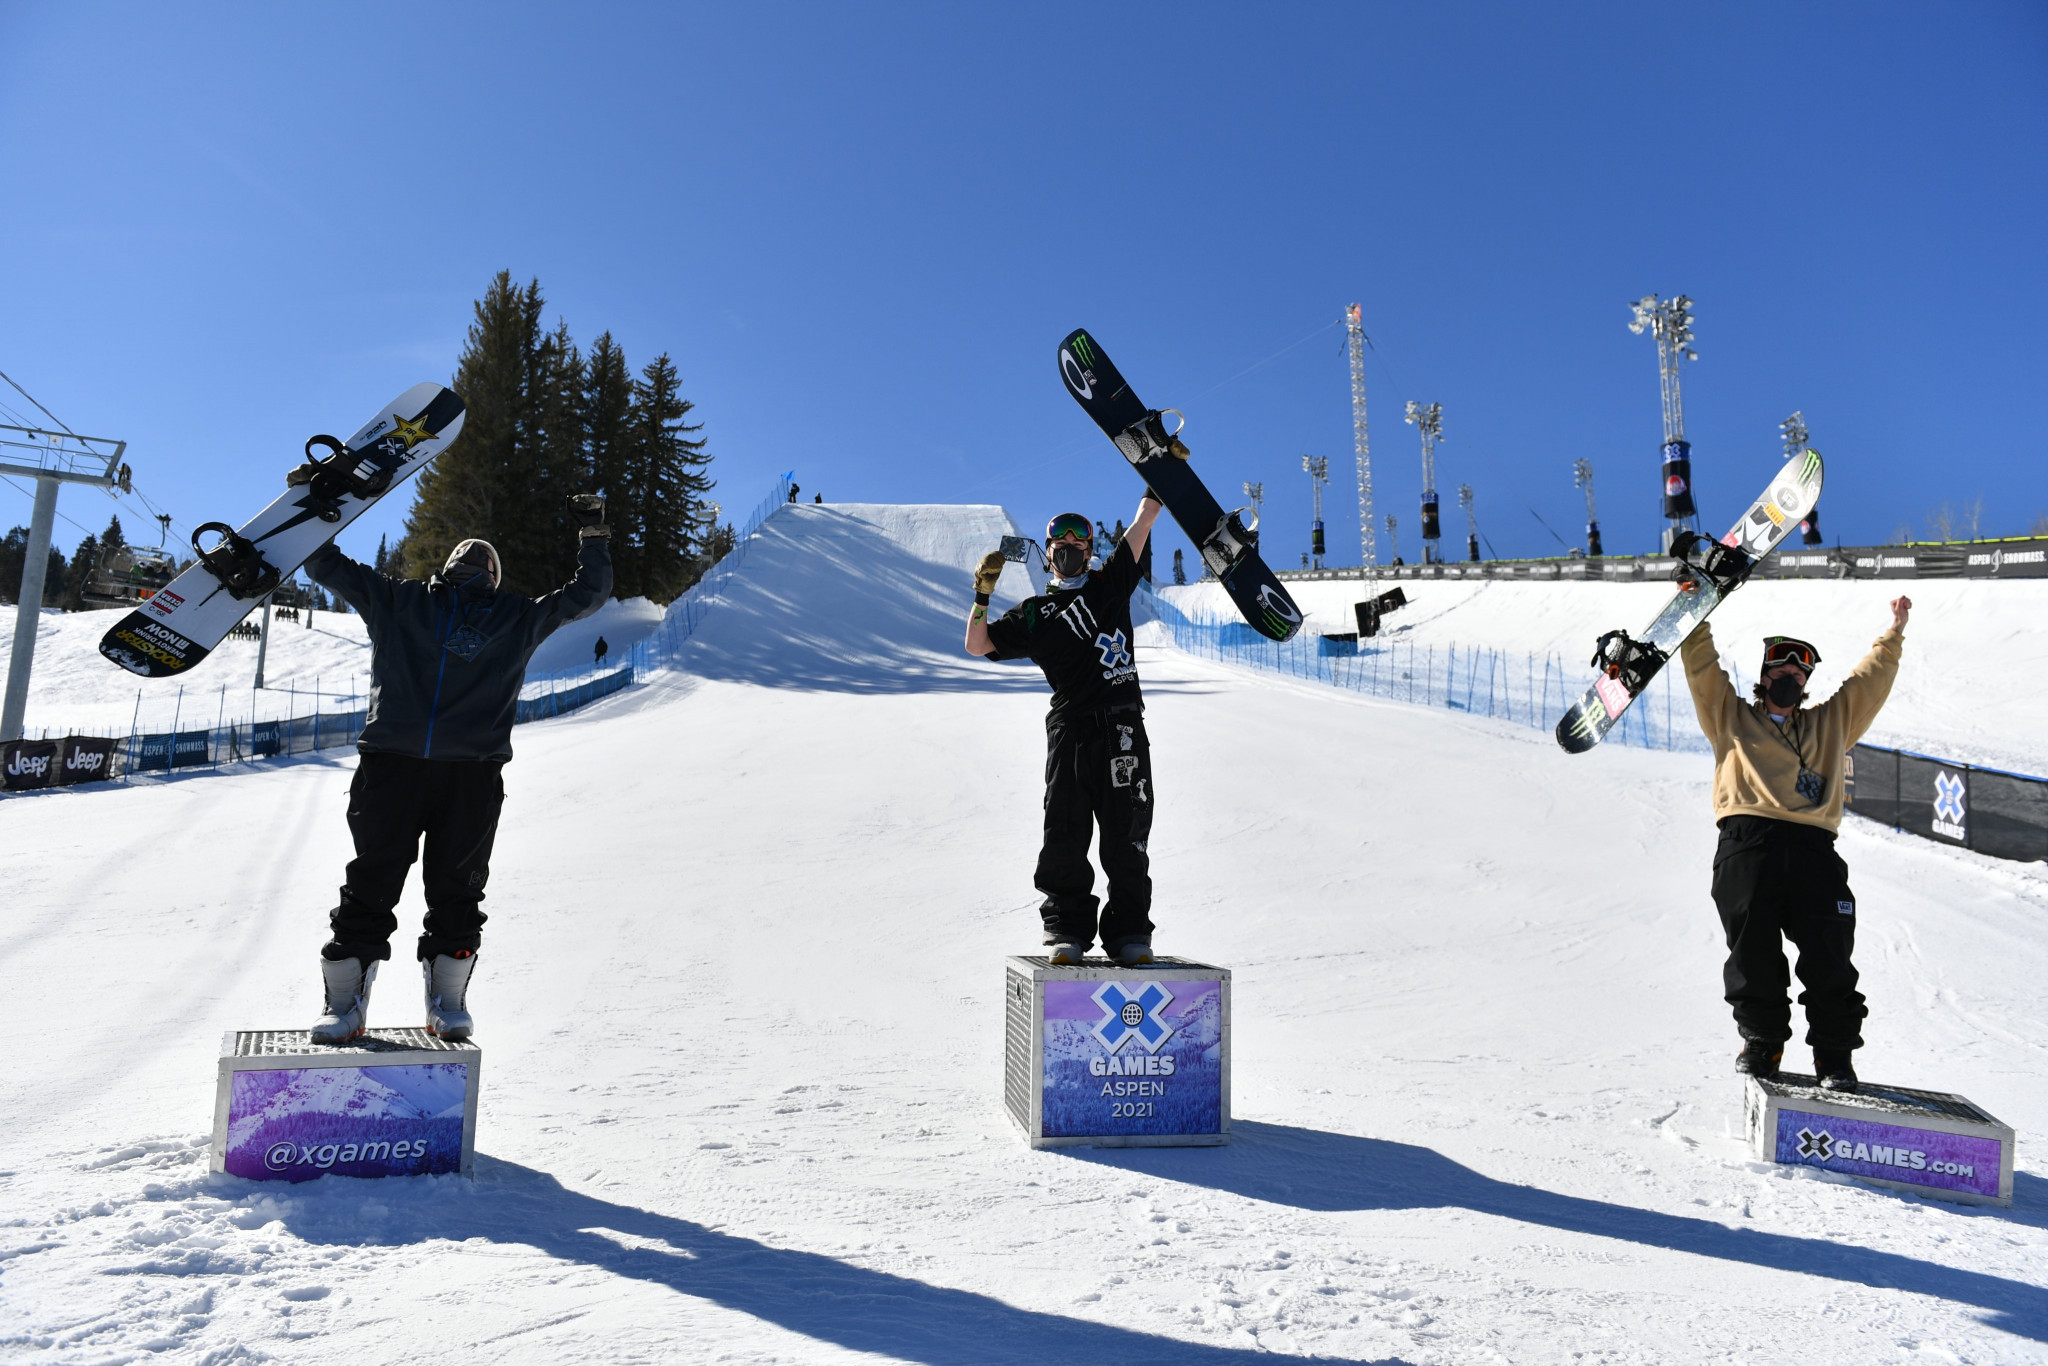 Henricksen and Anderson both win second titles Winter X Games come to an end